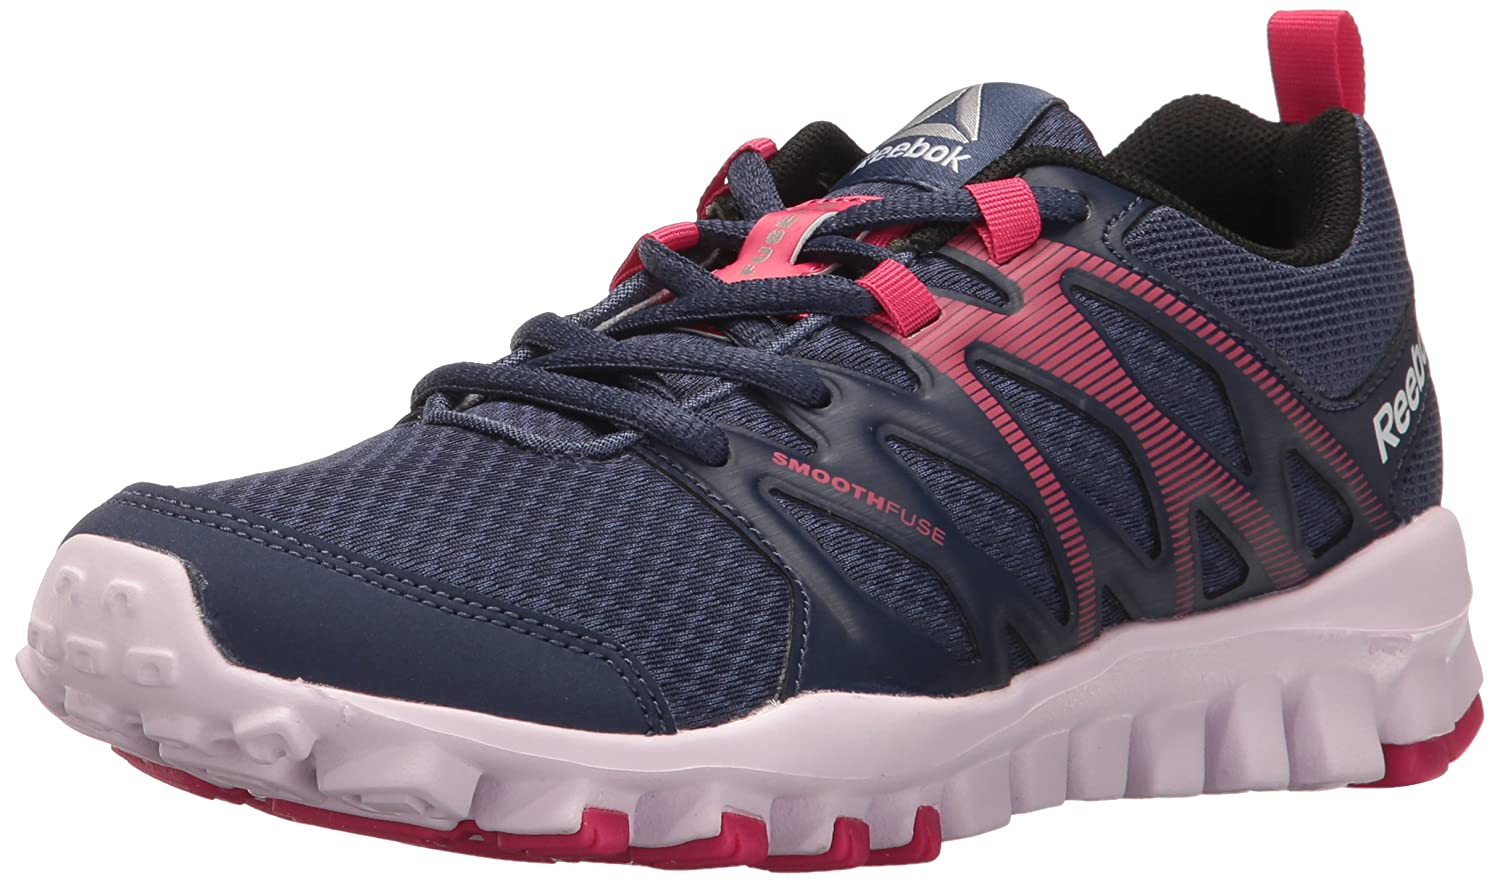 Reebok Women's Realflex Train 4.0 Cross-Trainer Shoe B01I0D5WWY 7 B(M) US|Blue Ink/Pink Craze/Black/Lucid Lilac/Silver